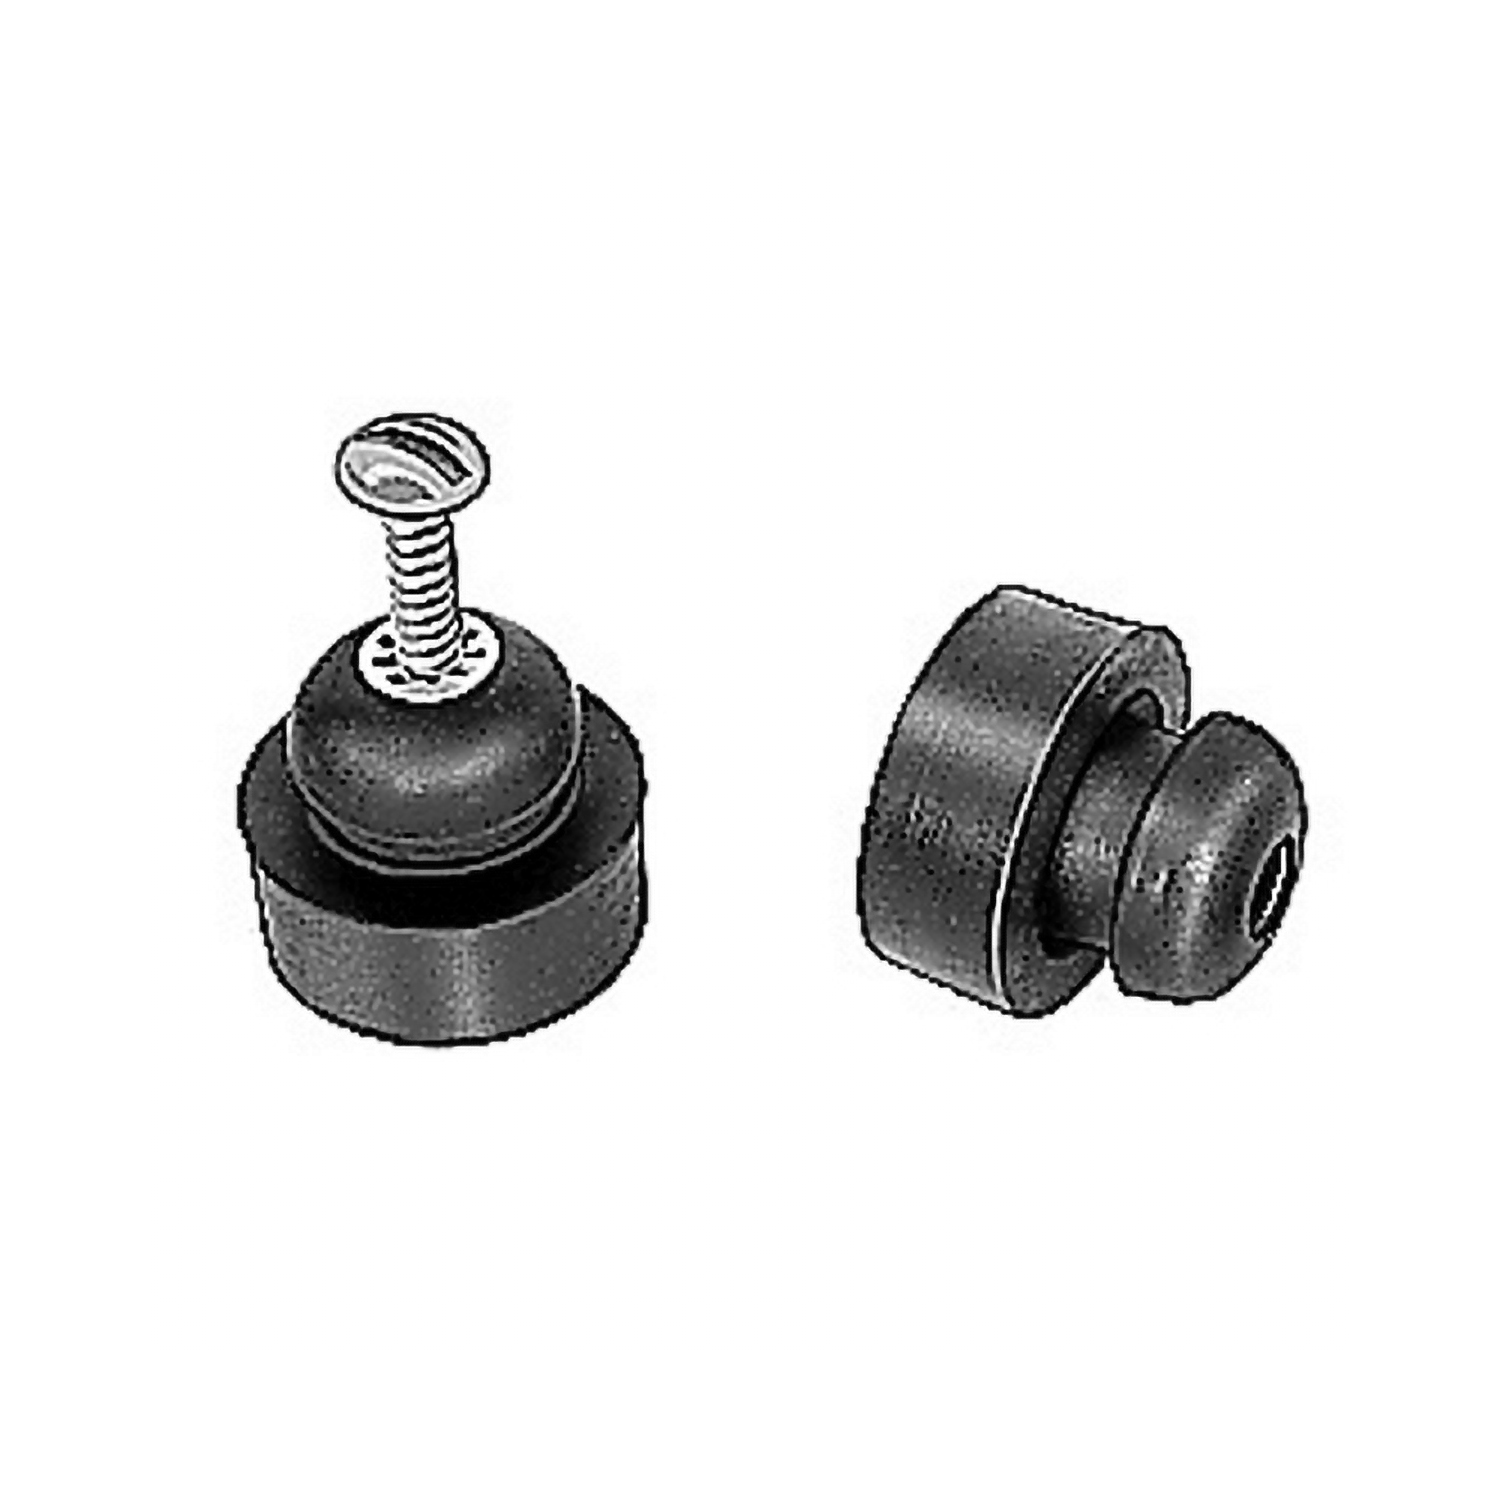 Rubber Grommet Kit Small Packard Online